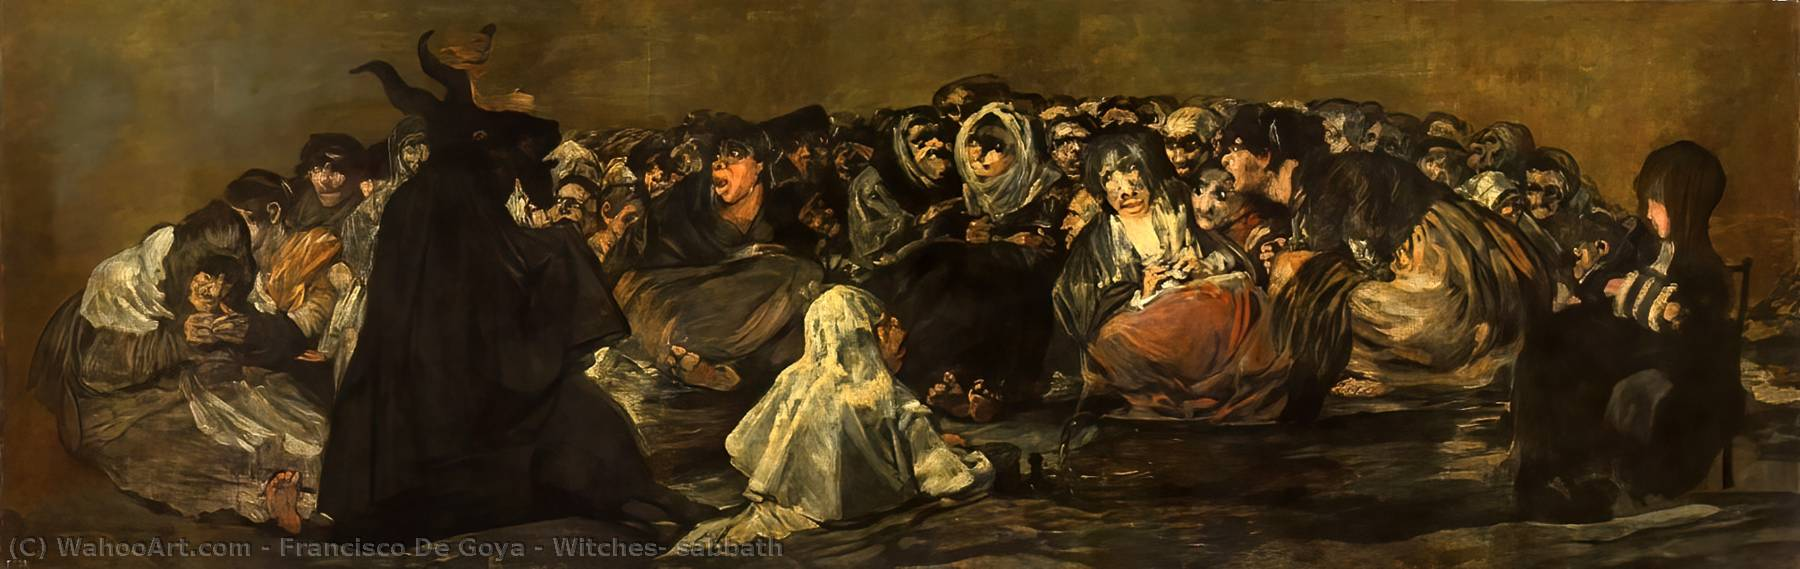 famous painting Sabato Streghe of Francisco De Goya